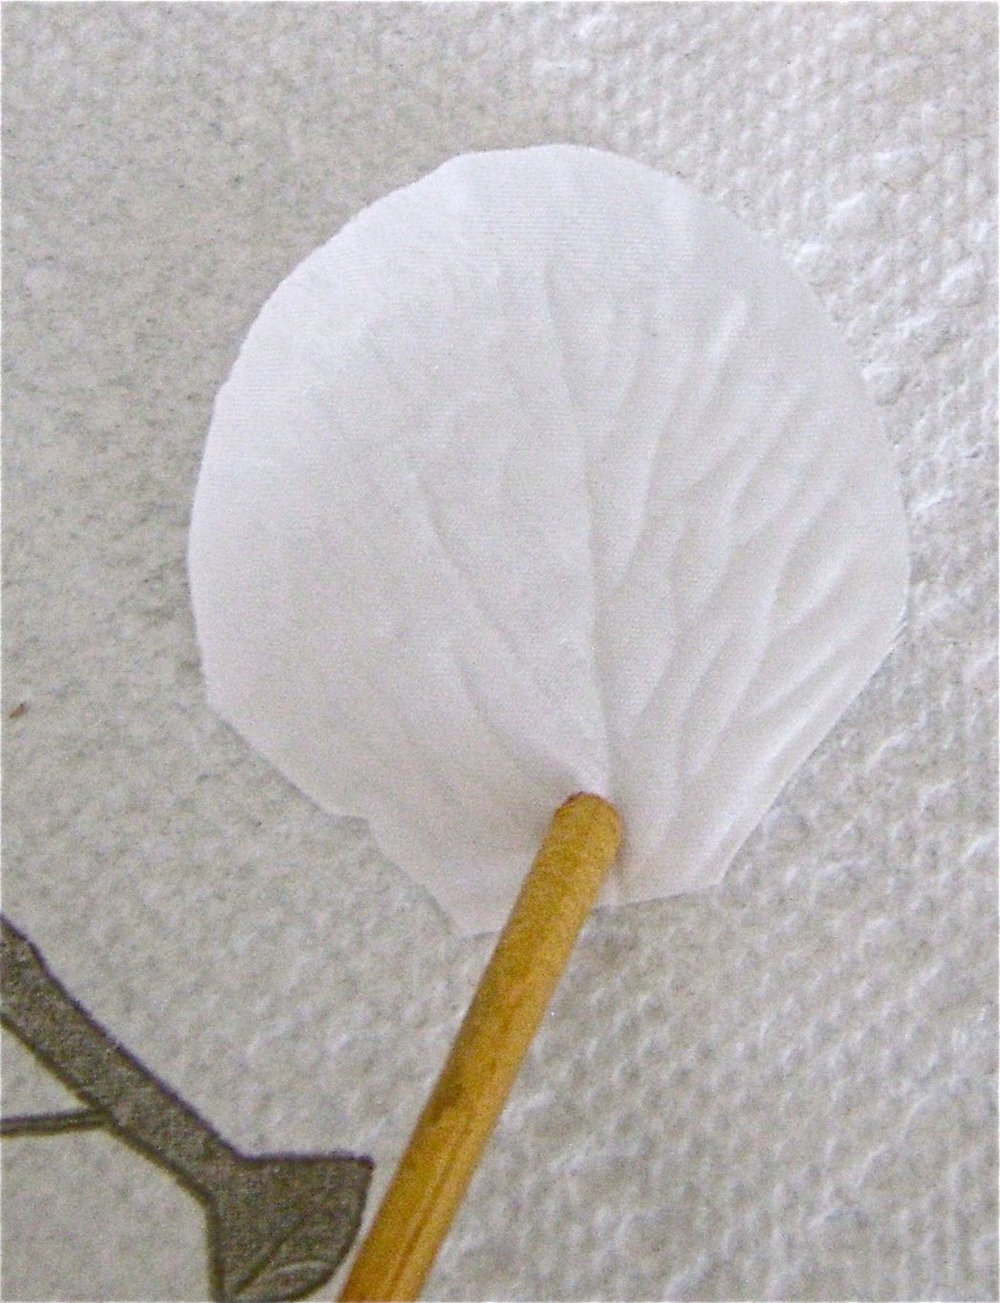 step 2 - Working over a paper towel, use a wood pick to hold down each white petal while you airbrush them.  Paint approximately 80 petals using, red, orange, gold, purple and the tan color you created.